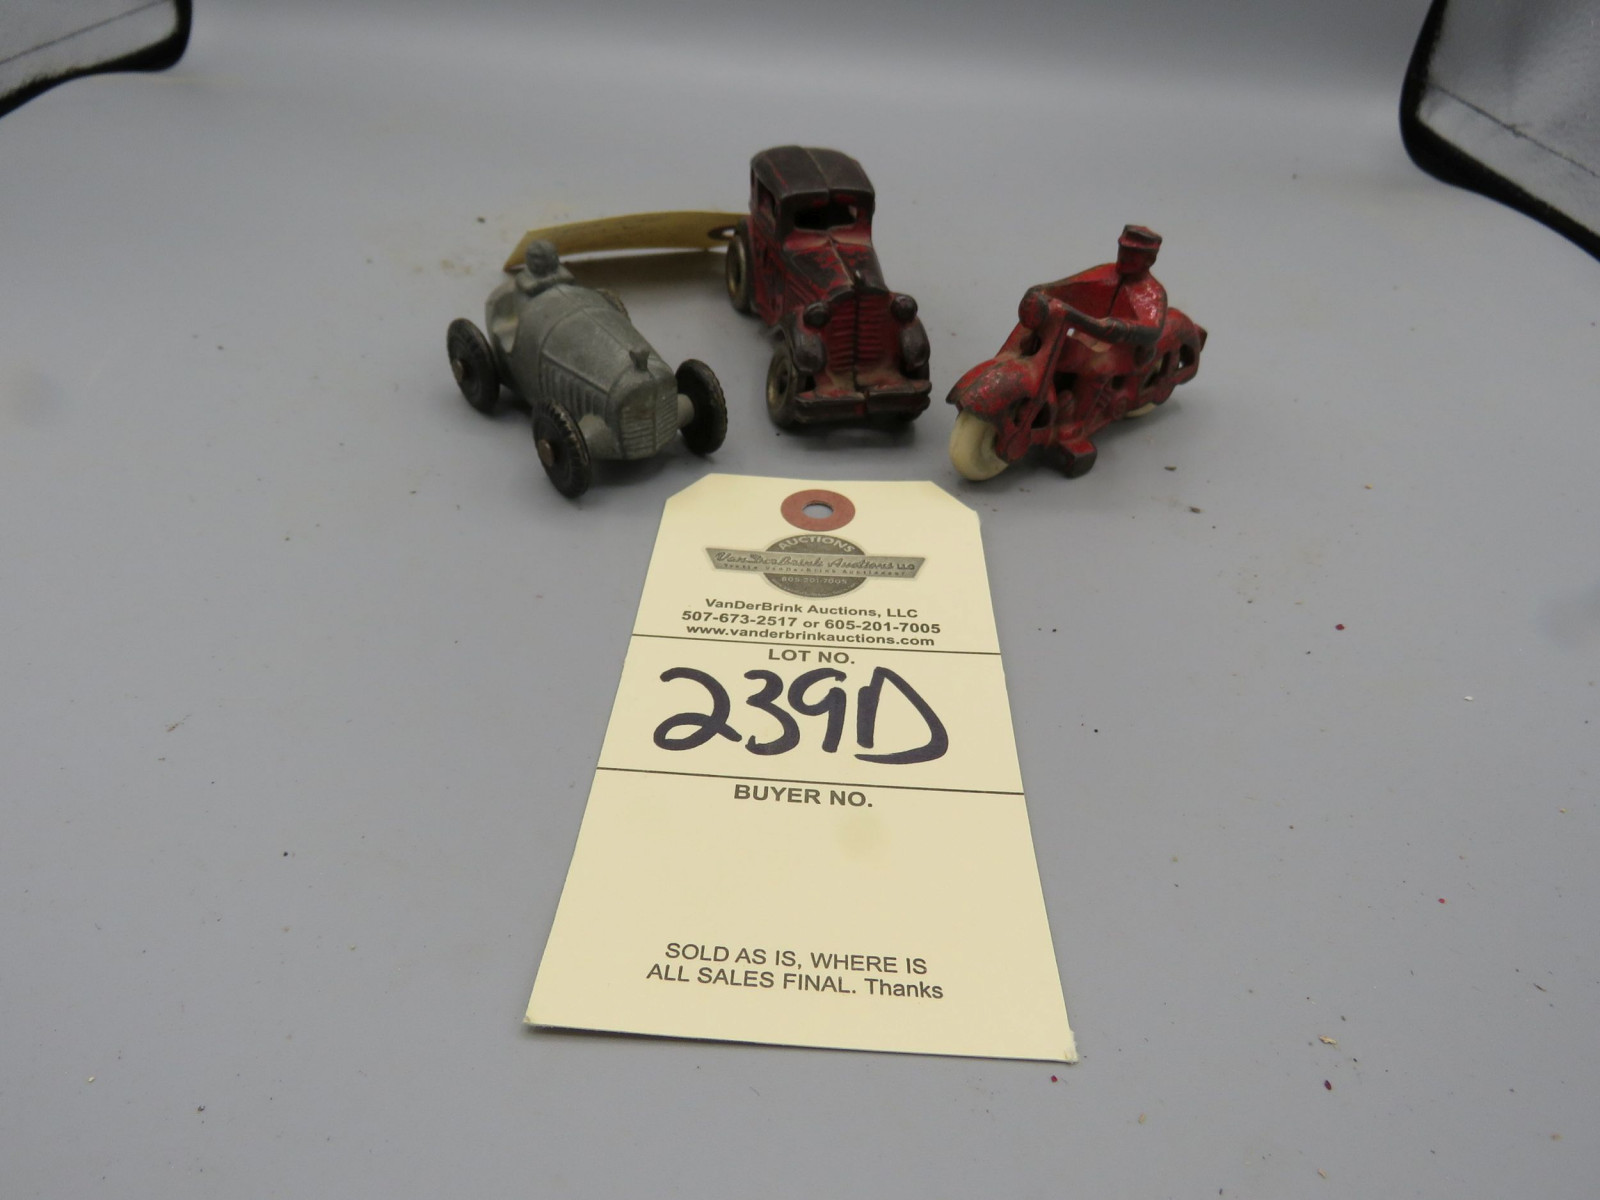 Group of 3 Vintage Cast Iron Toys - Image 1